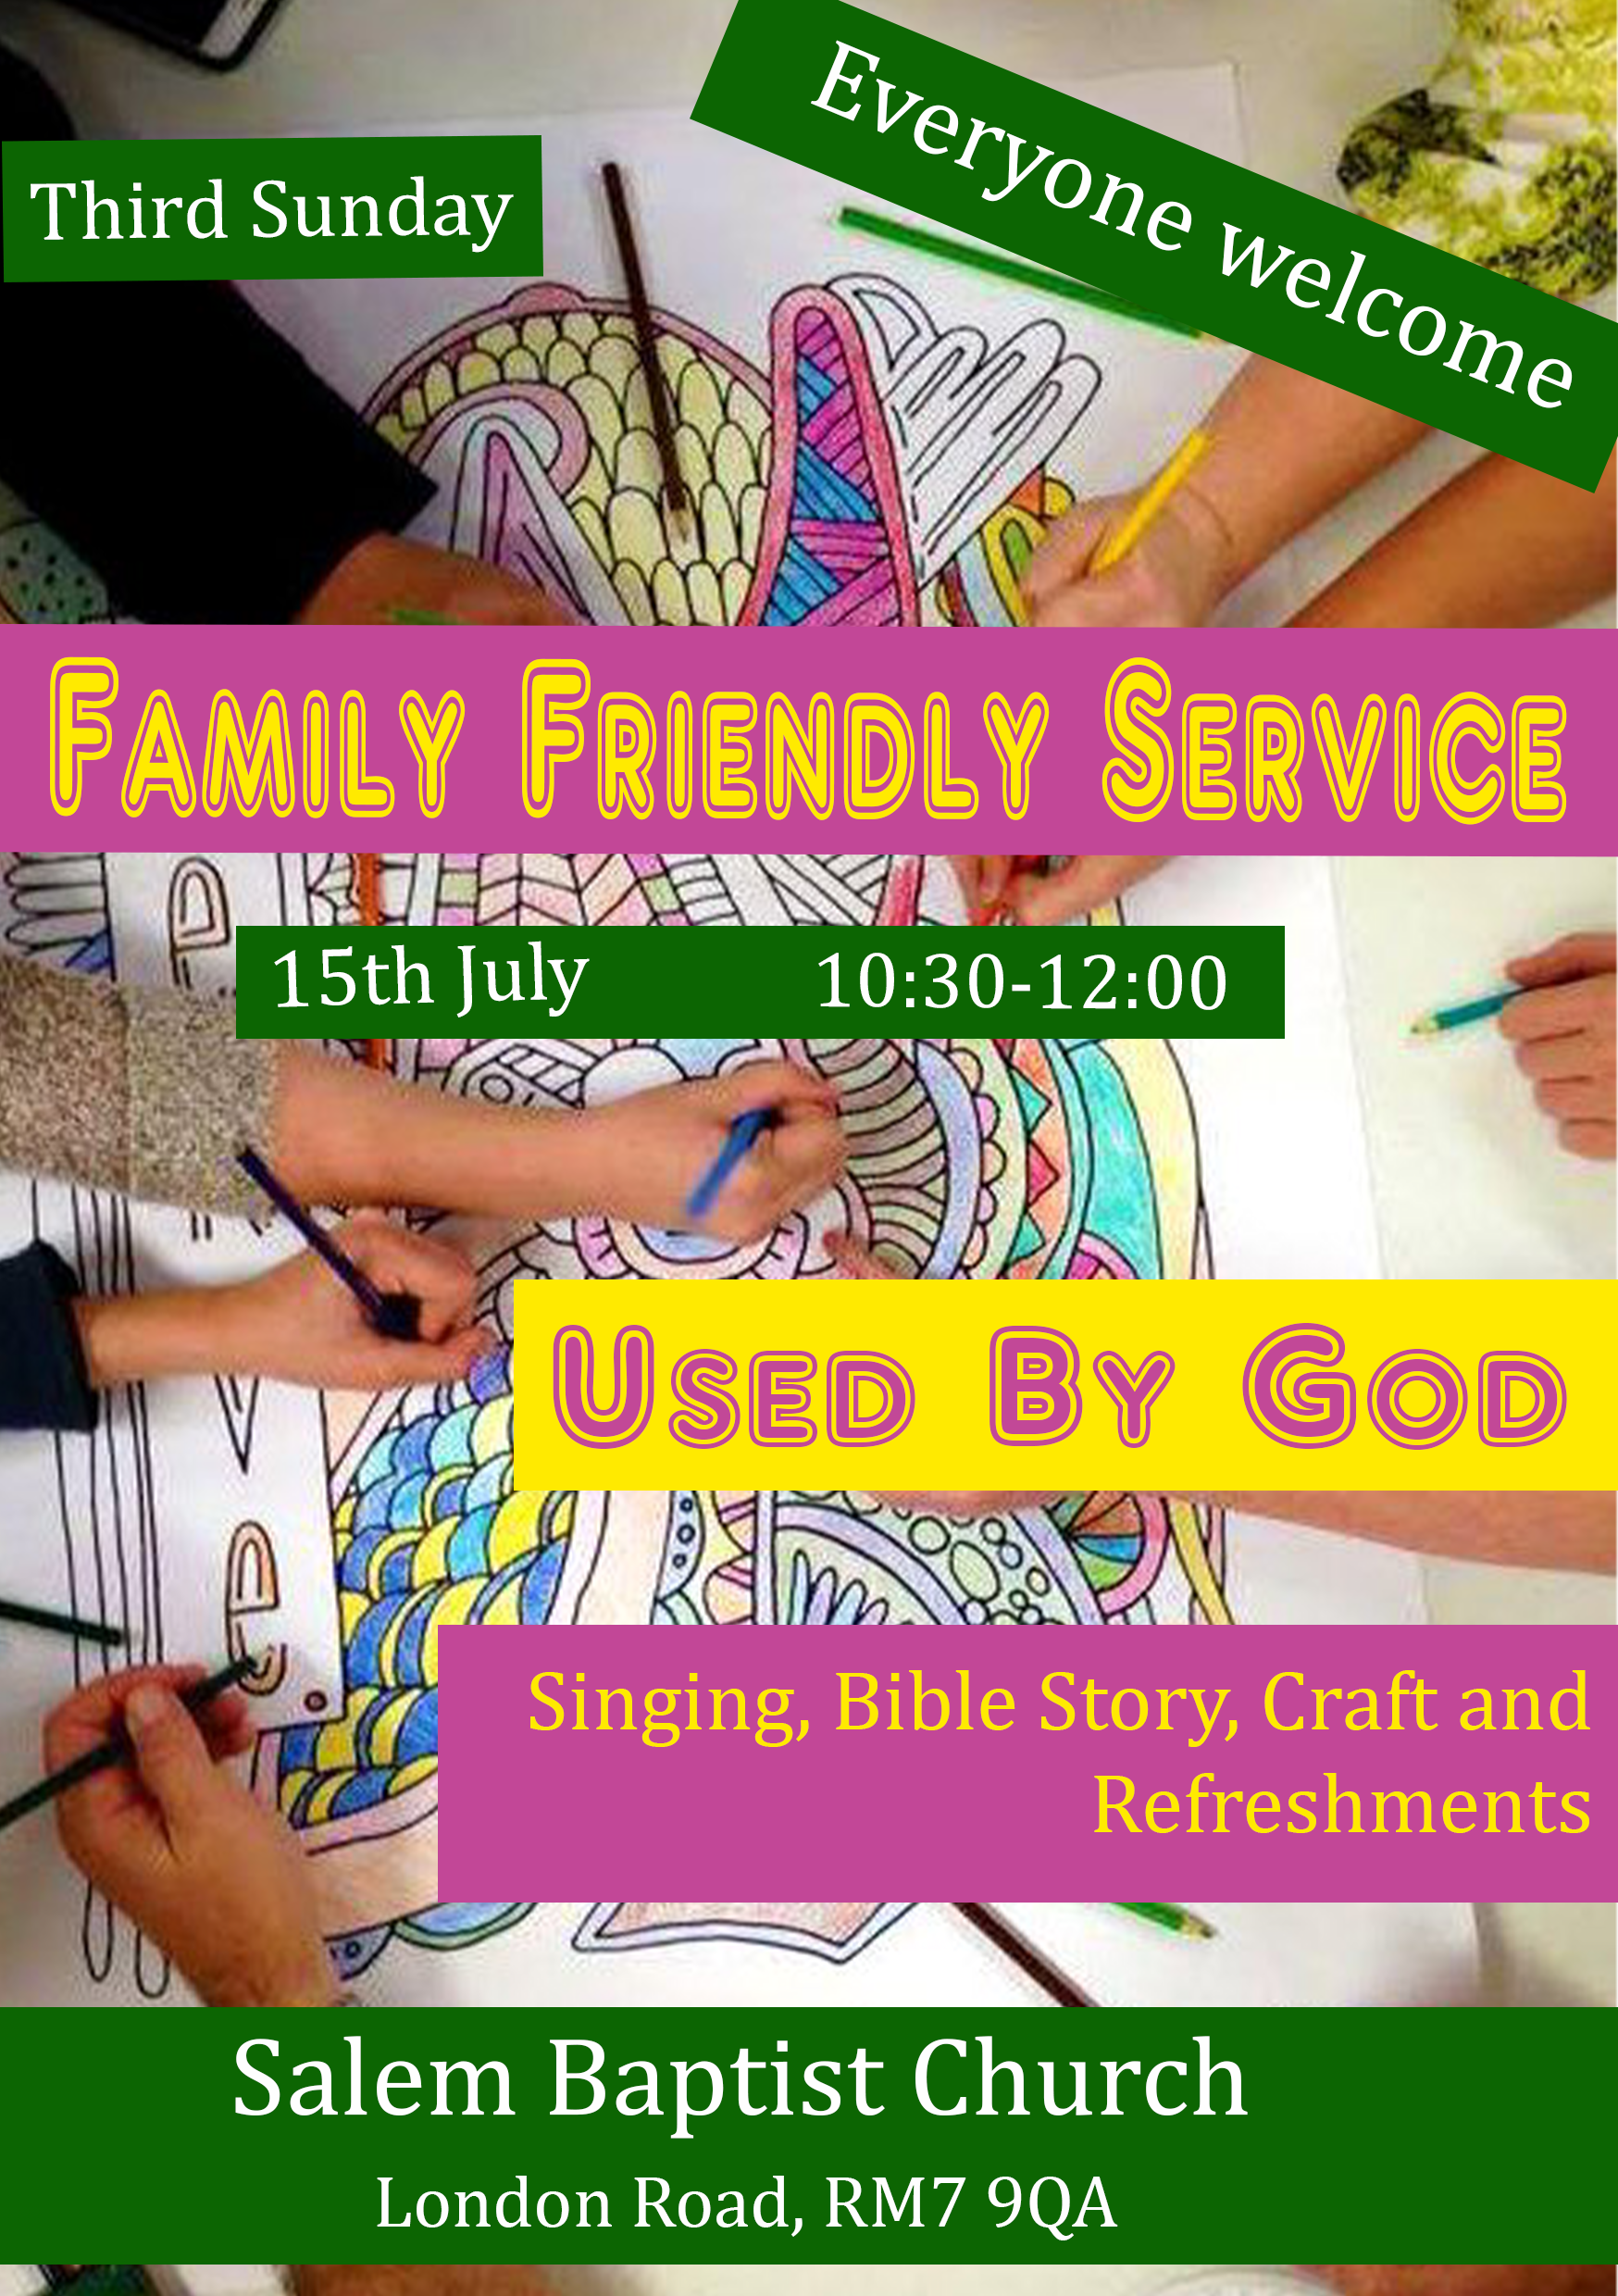 Romford event – Use by God